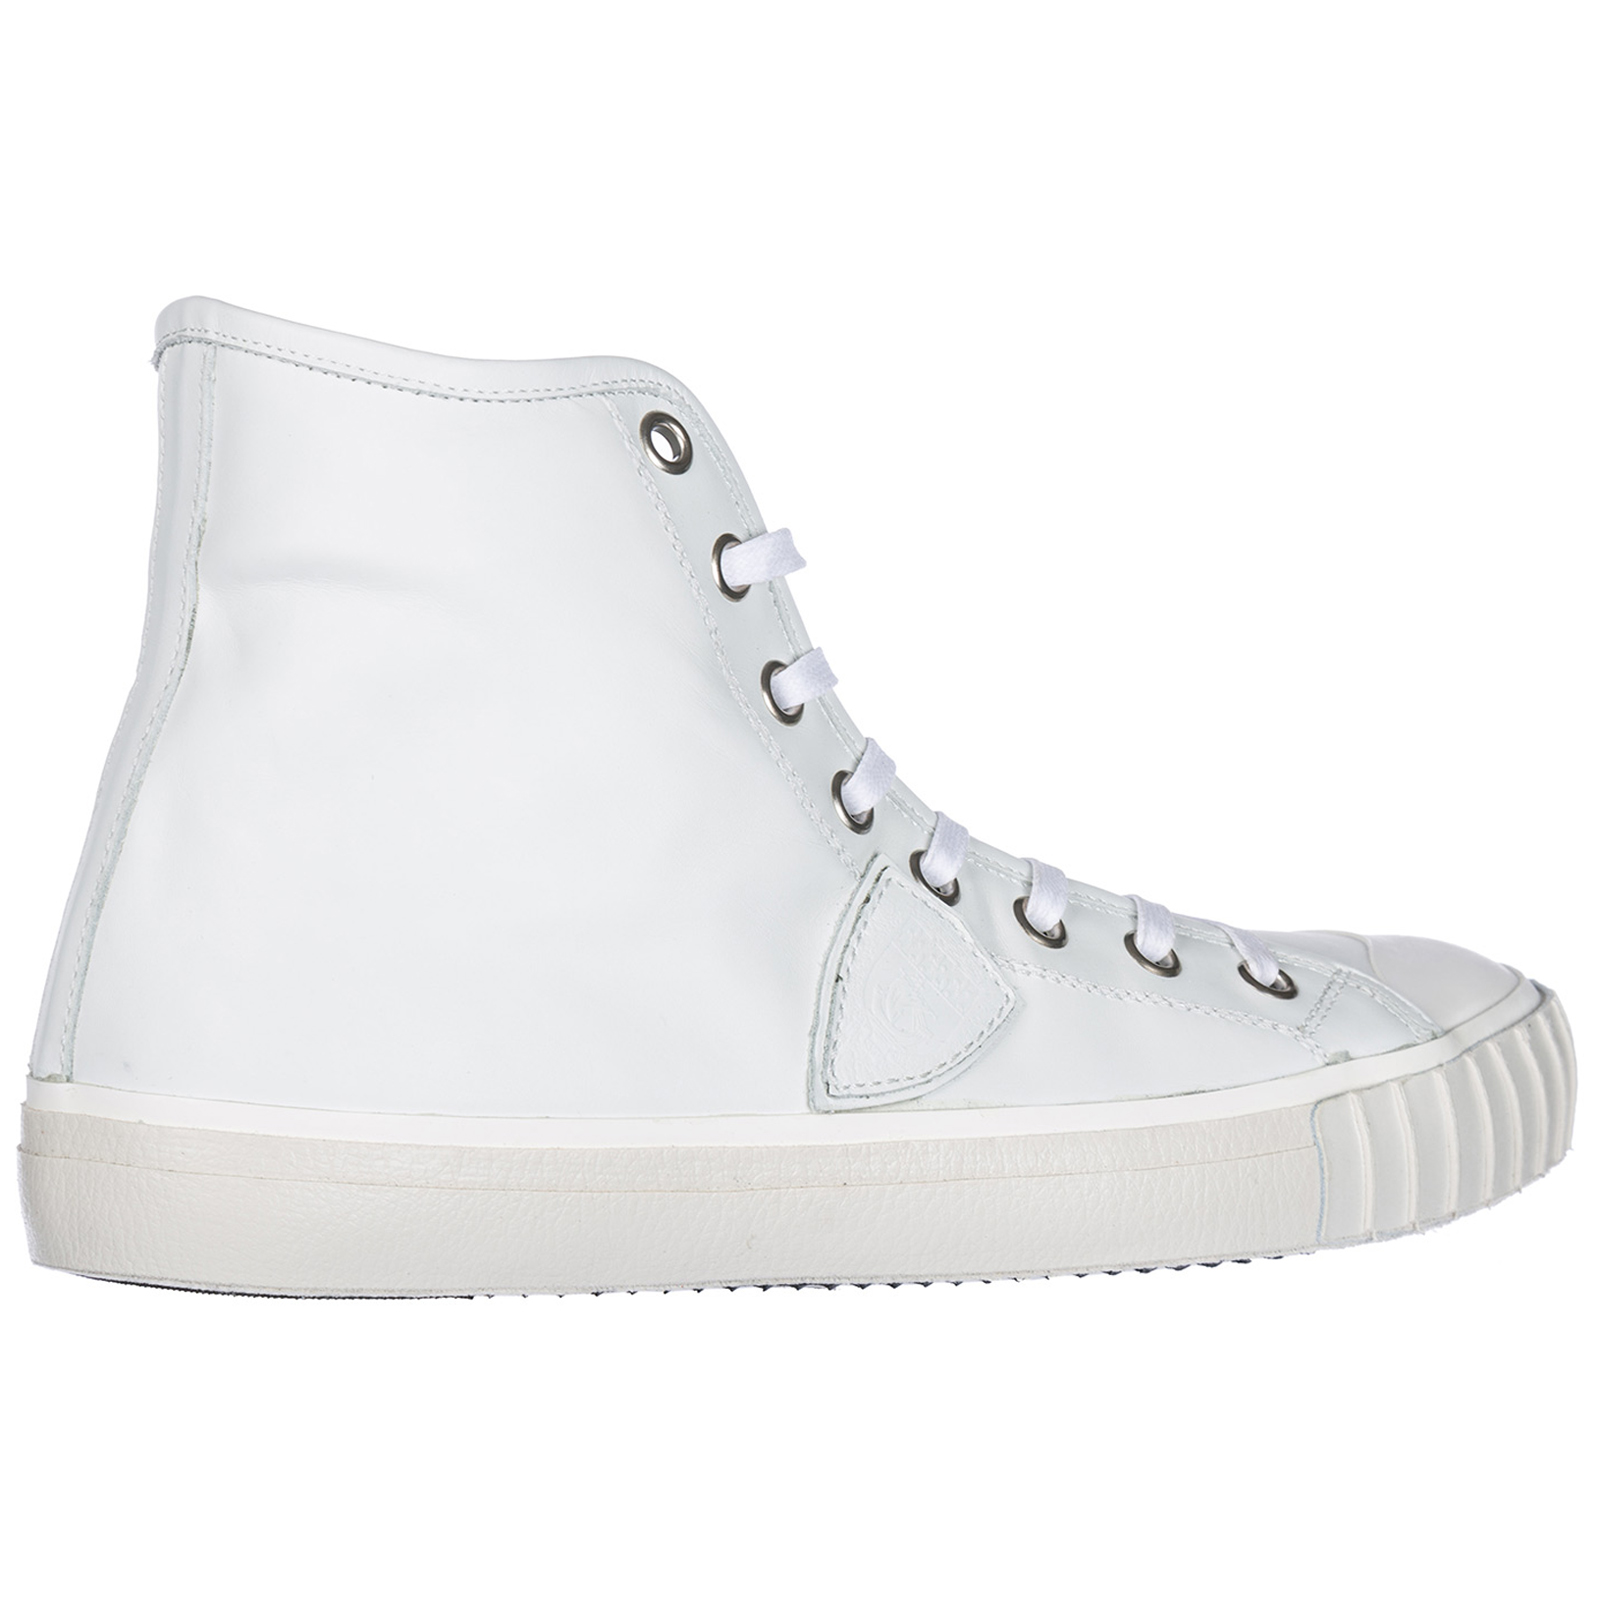 Men's shoes high top leather trainers sneakers paris h